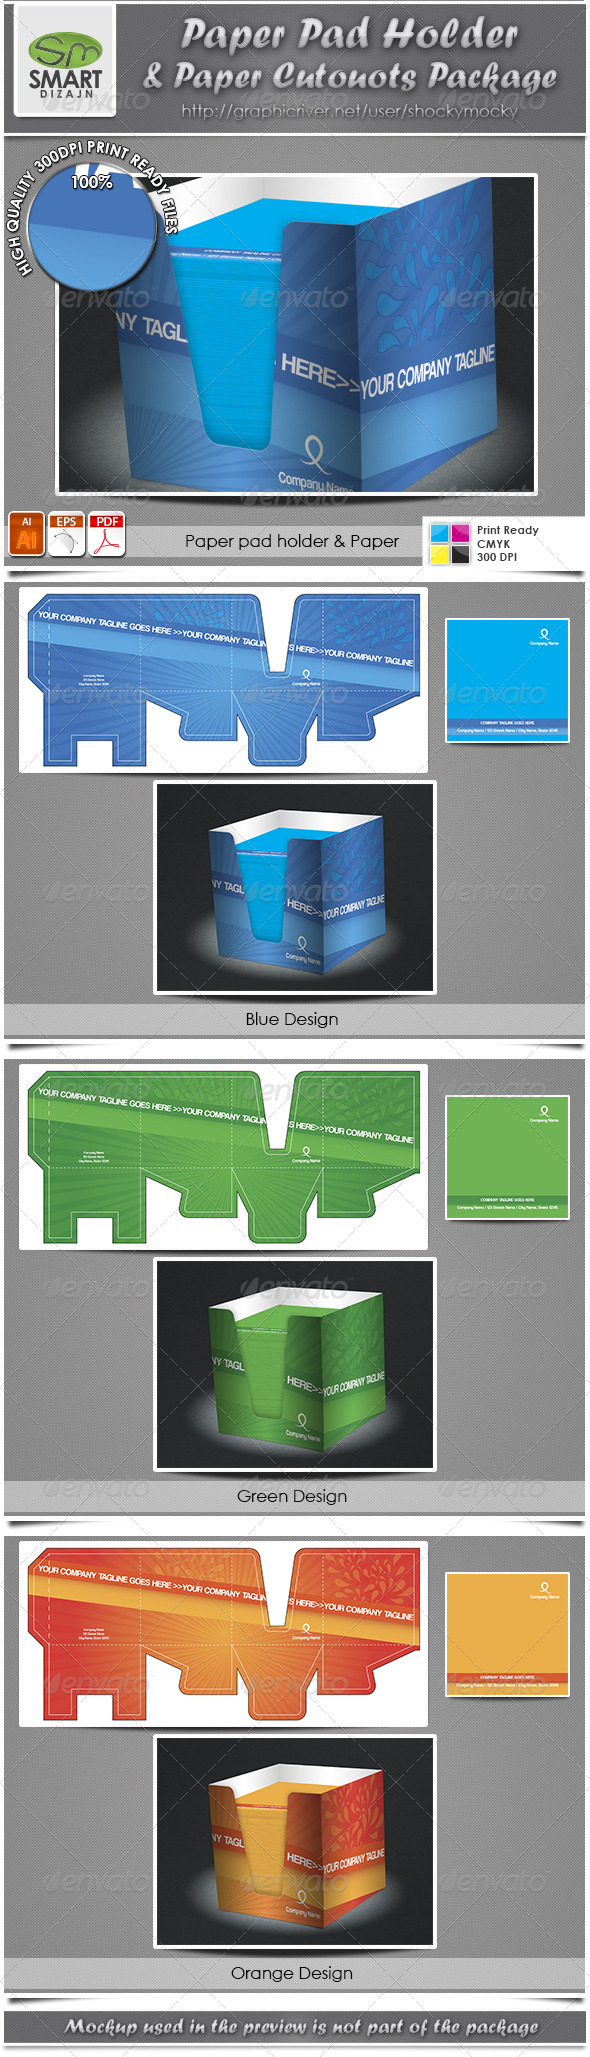 GraphicRiver Paper Pad Holder & Paper Cutouts Package 2743530